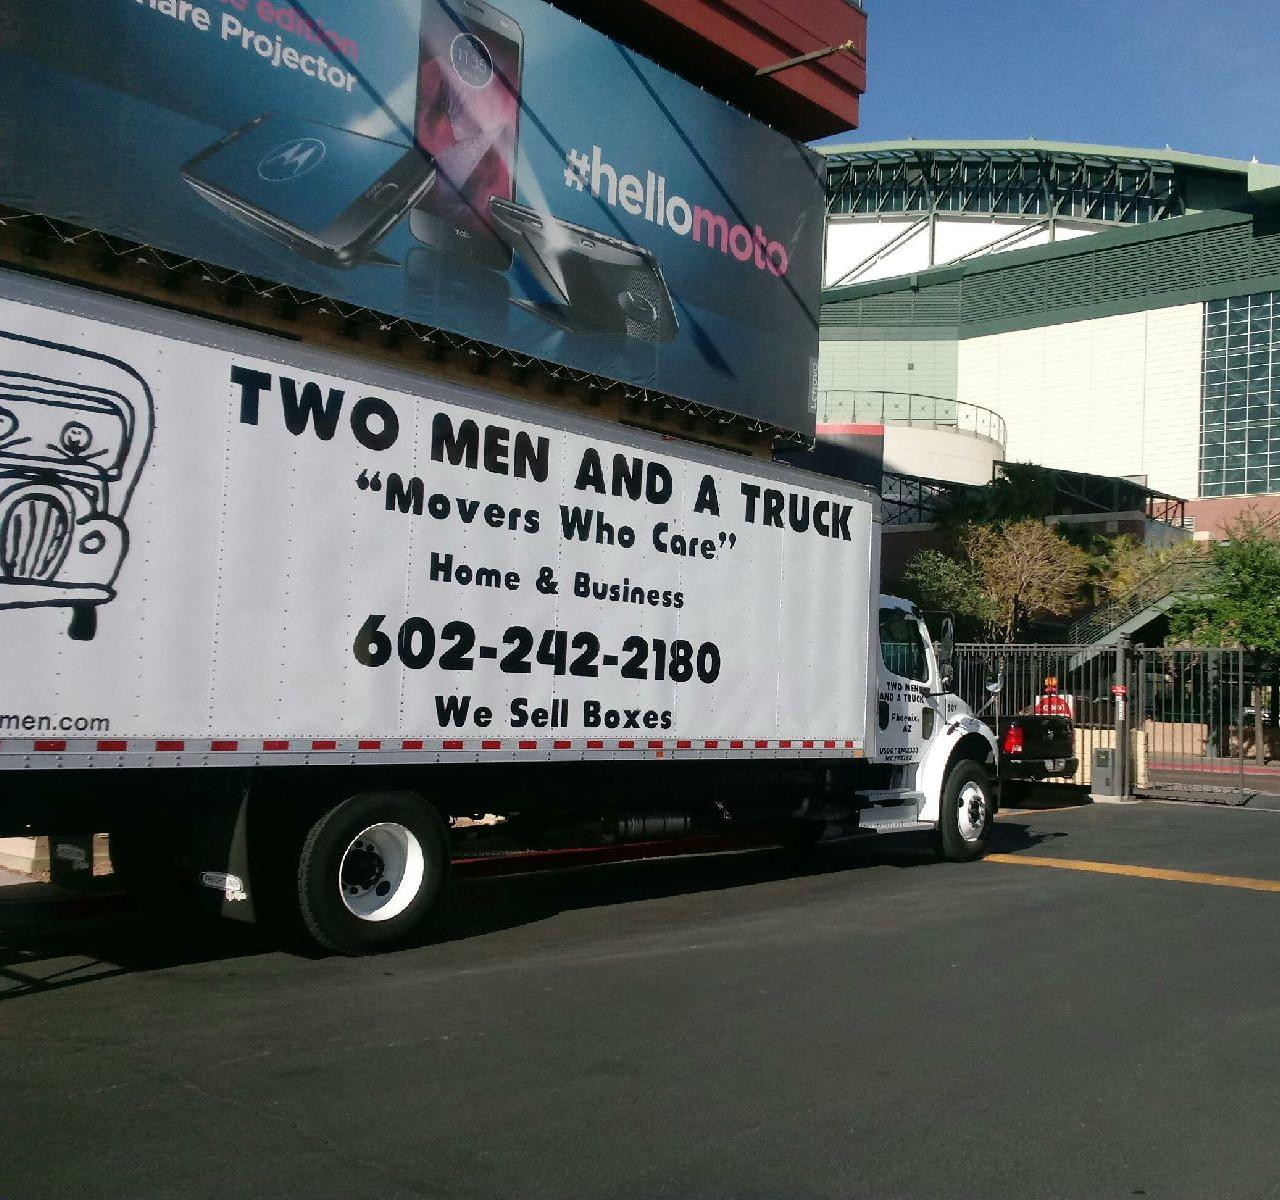 TWO MEN AND A TRUCK Moving Company Downtown Phoenix